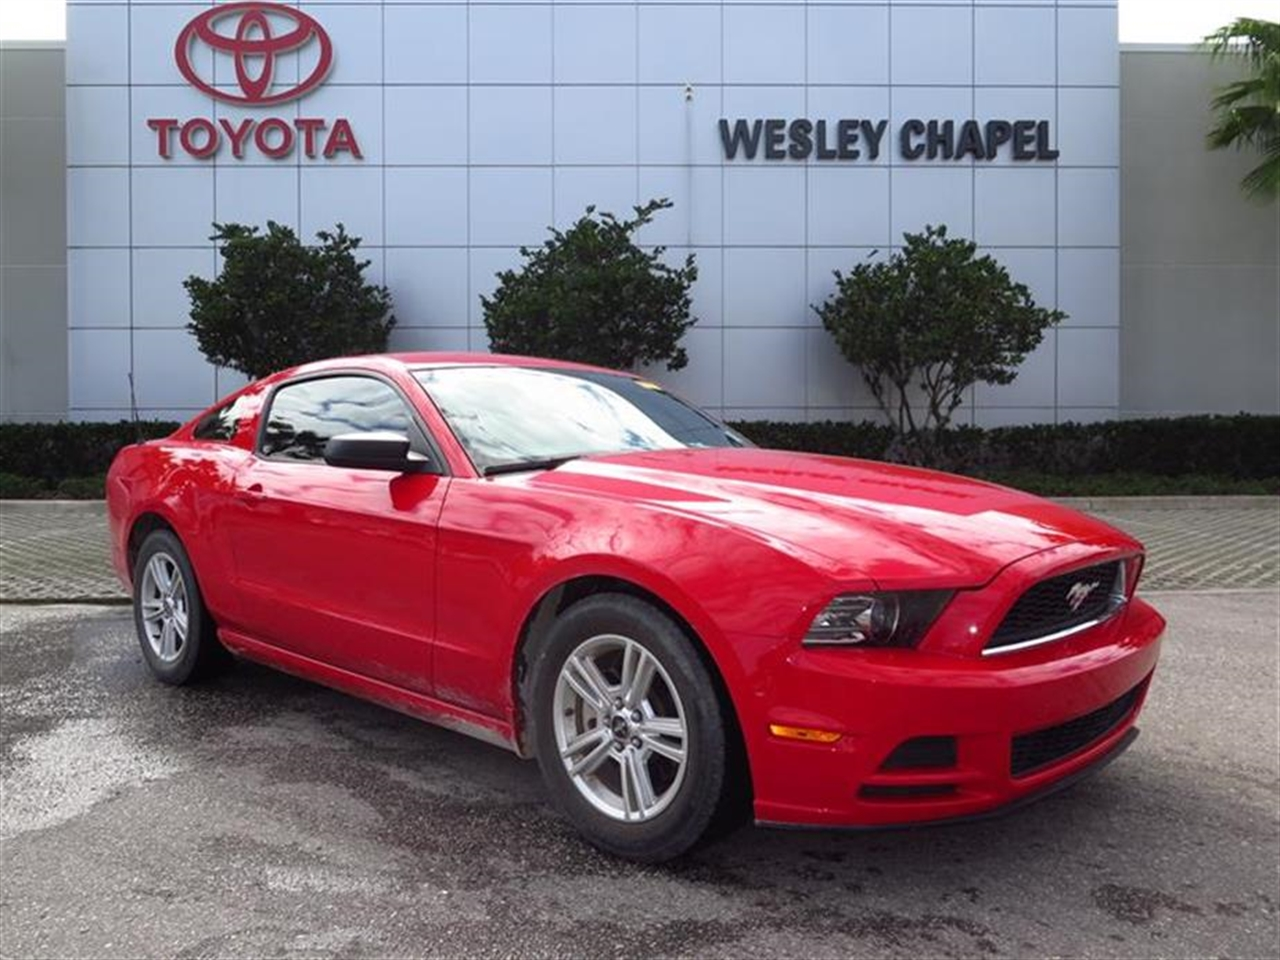 2014 FORD MUSTANG 2dr Cpe V6 10064 miles 2 12V DC Power Outlets 2 Seatback Storage Pockets 4 P